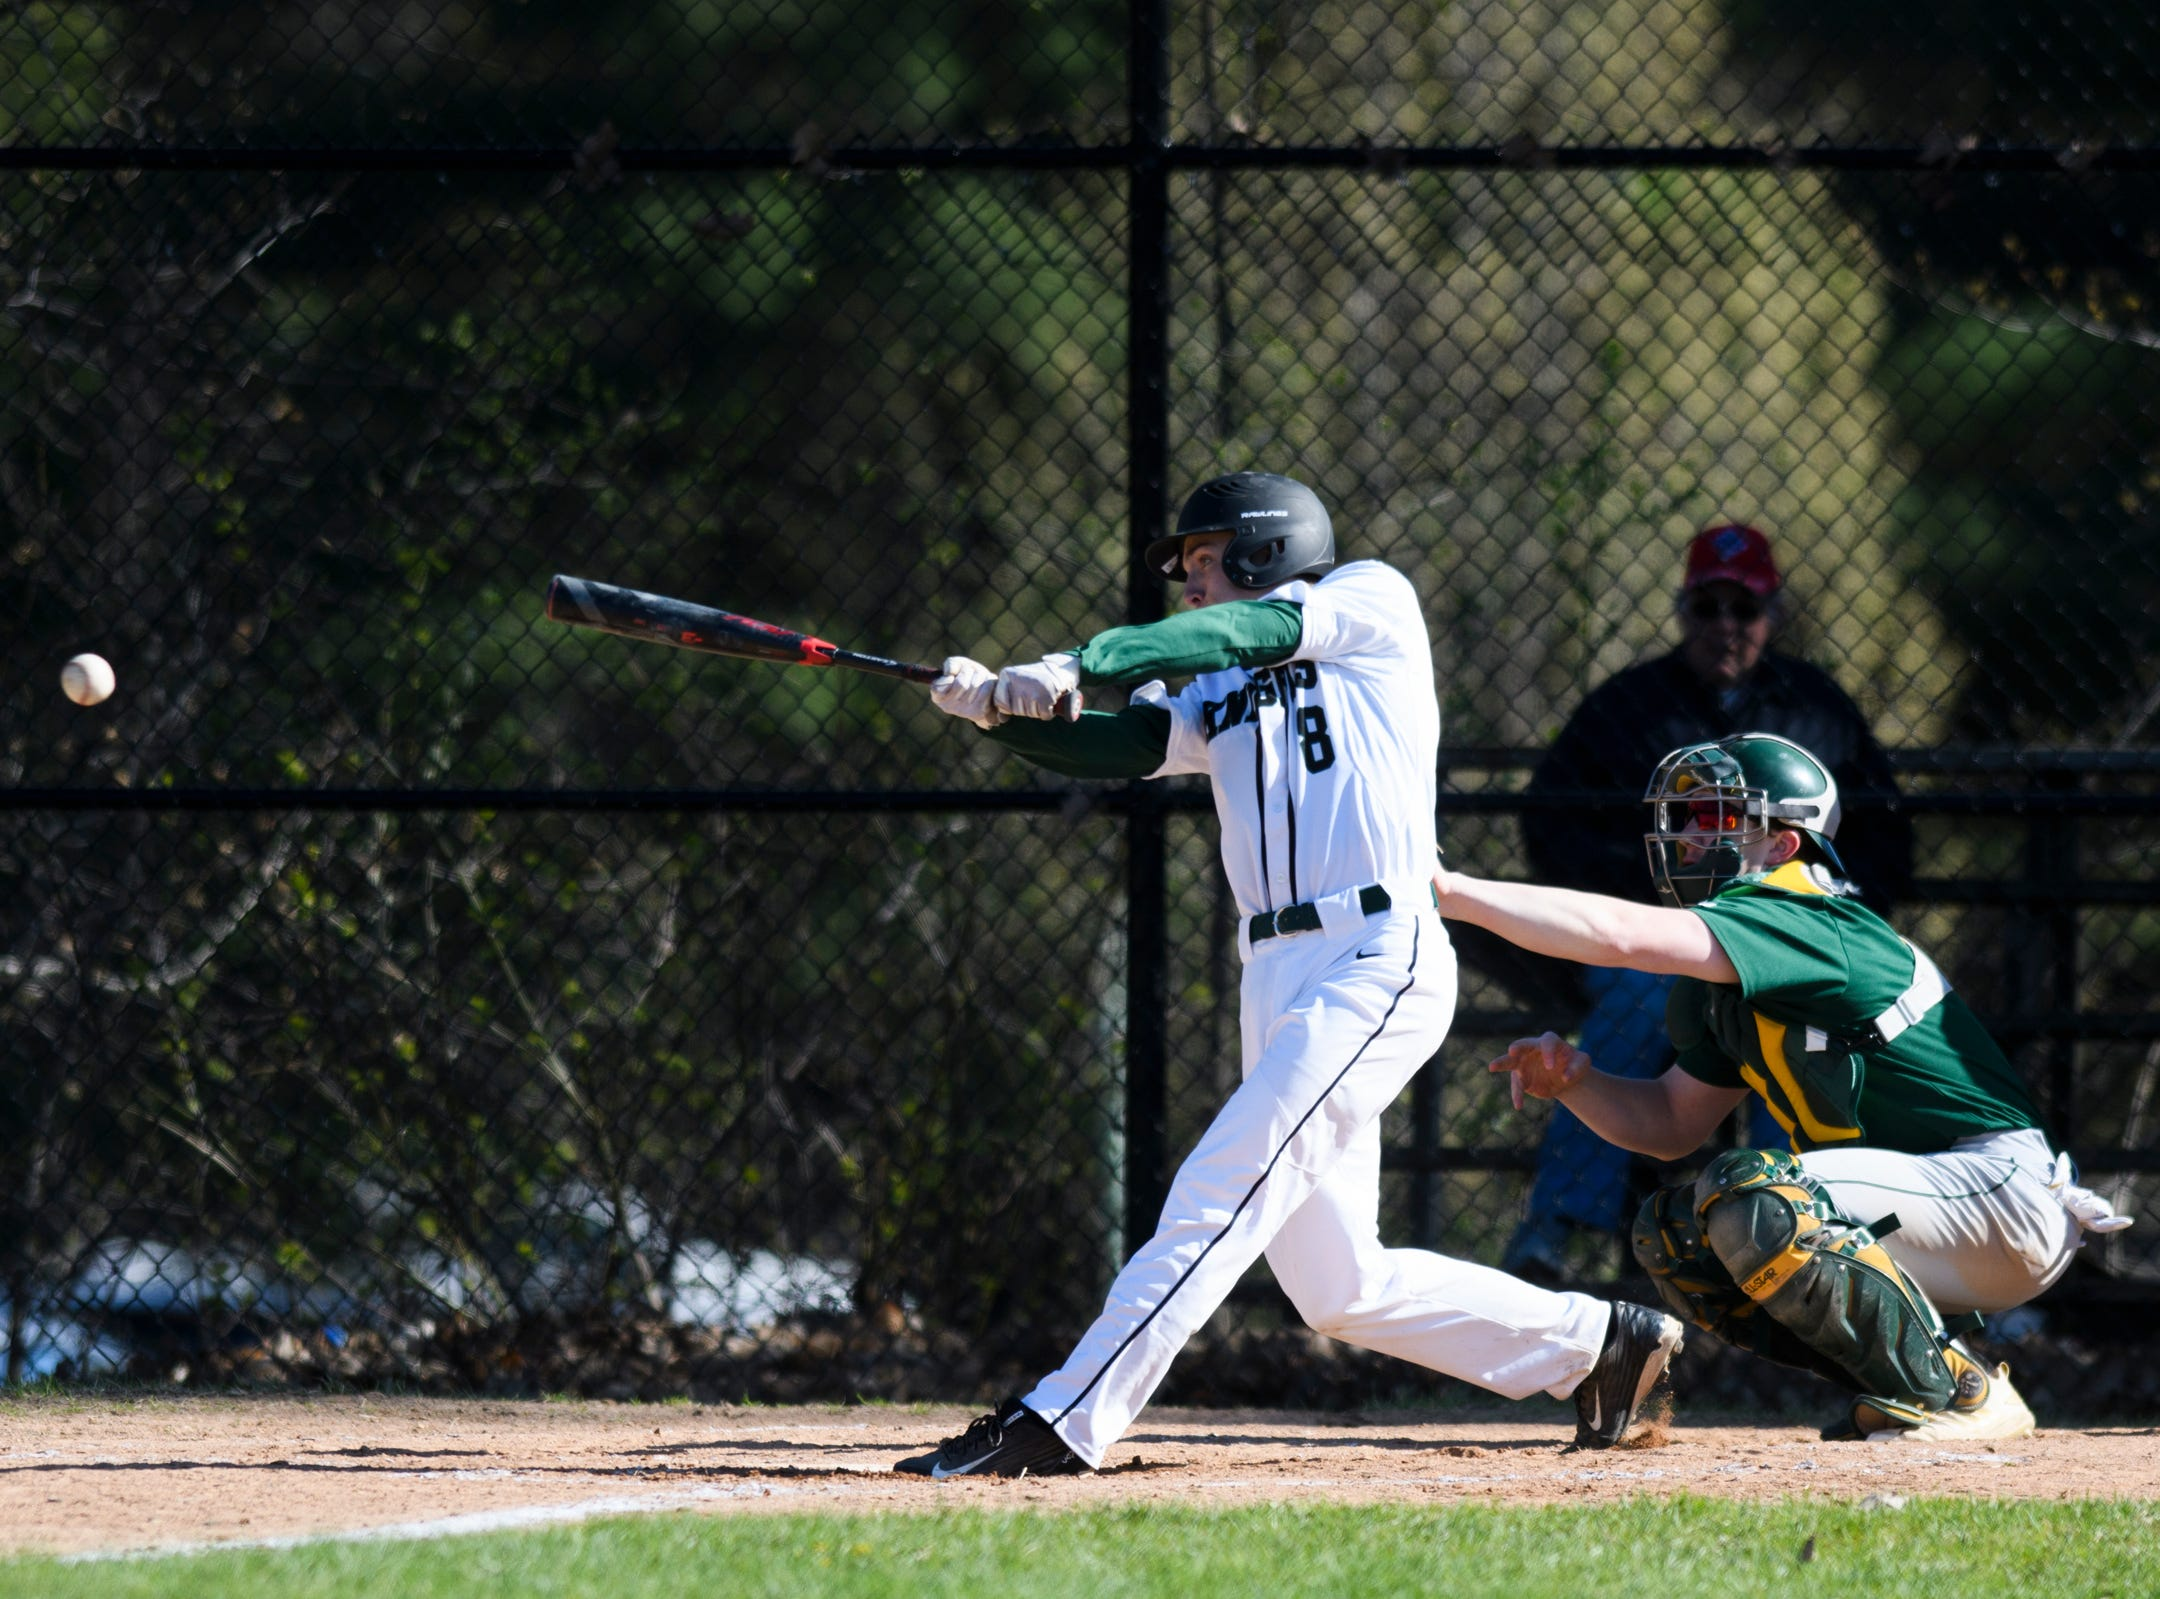 Rice's JB Bahrenburg (8) hits the ball during the high school baseball game between BFA St. Albans and Rice at Rice Memorial High School on Wednesday afternoon May 8, 2019 in South Burlington, Vermont.